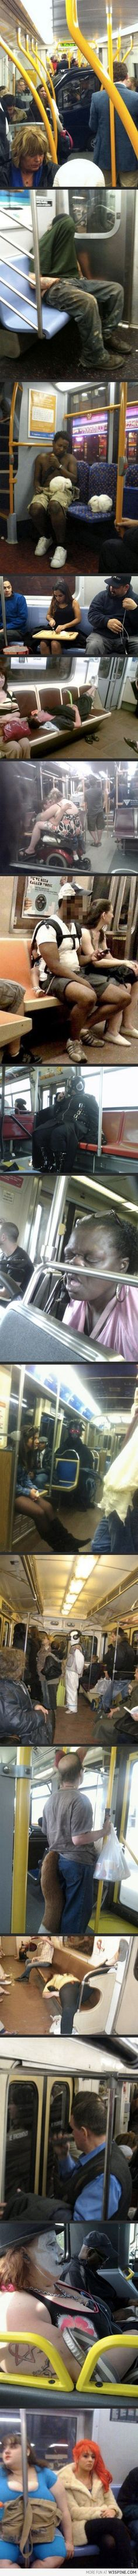 Weird People On The Subway